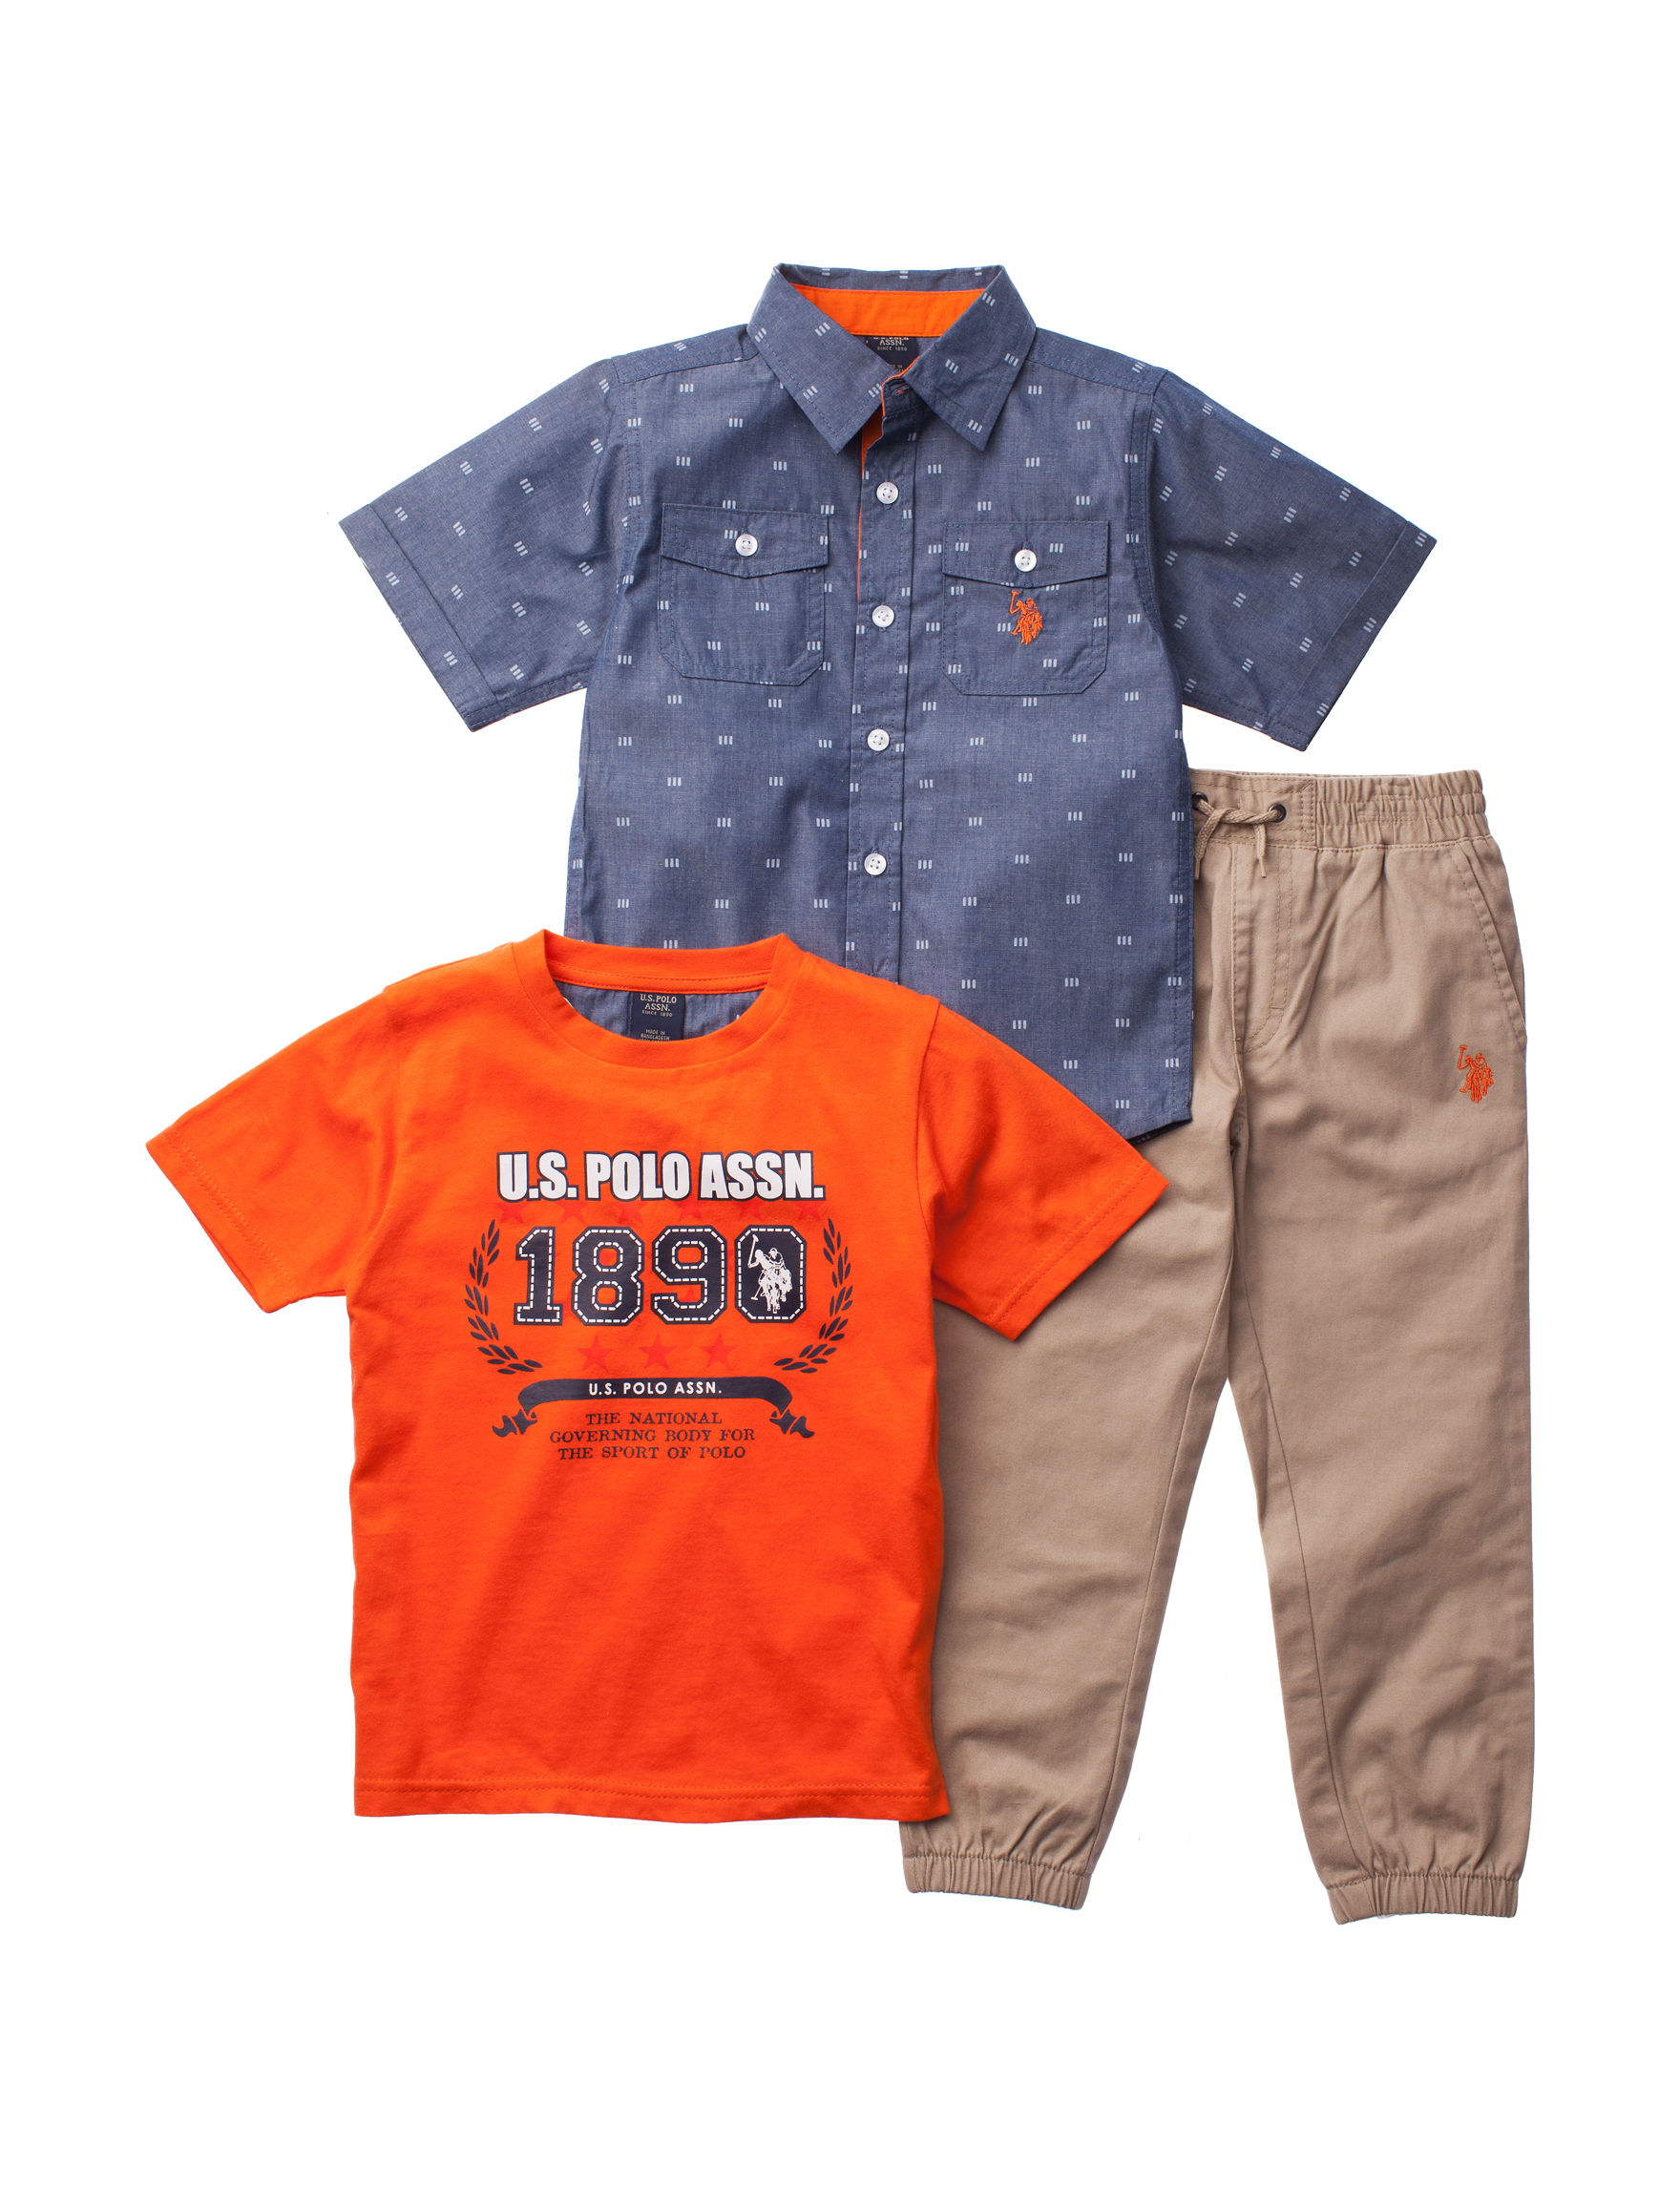 U.S. Polo Assn. Blue / Orange